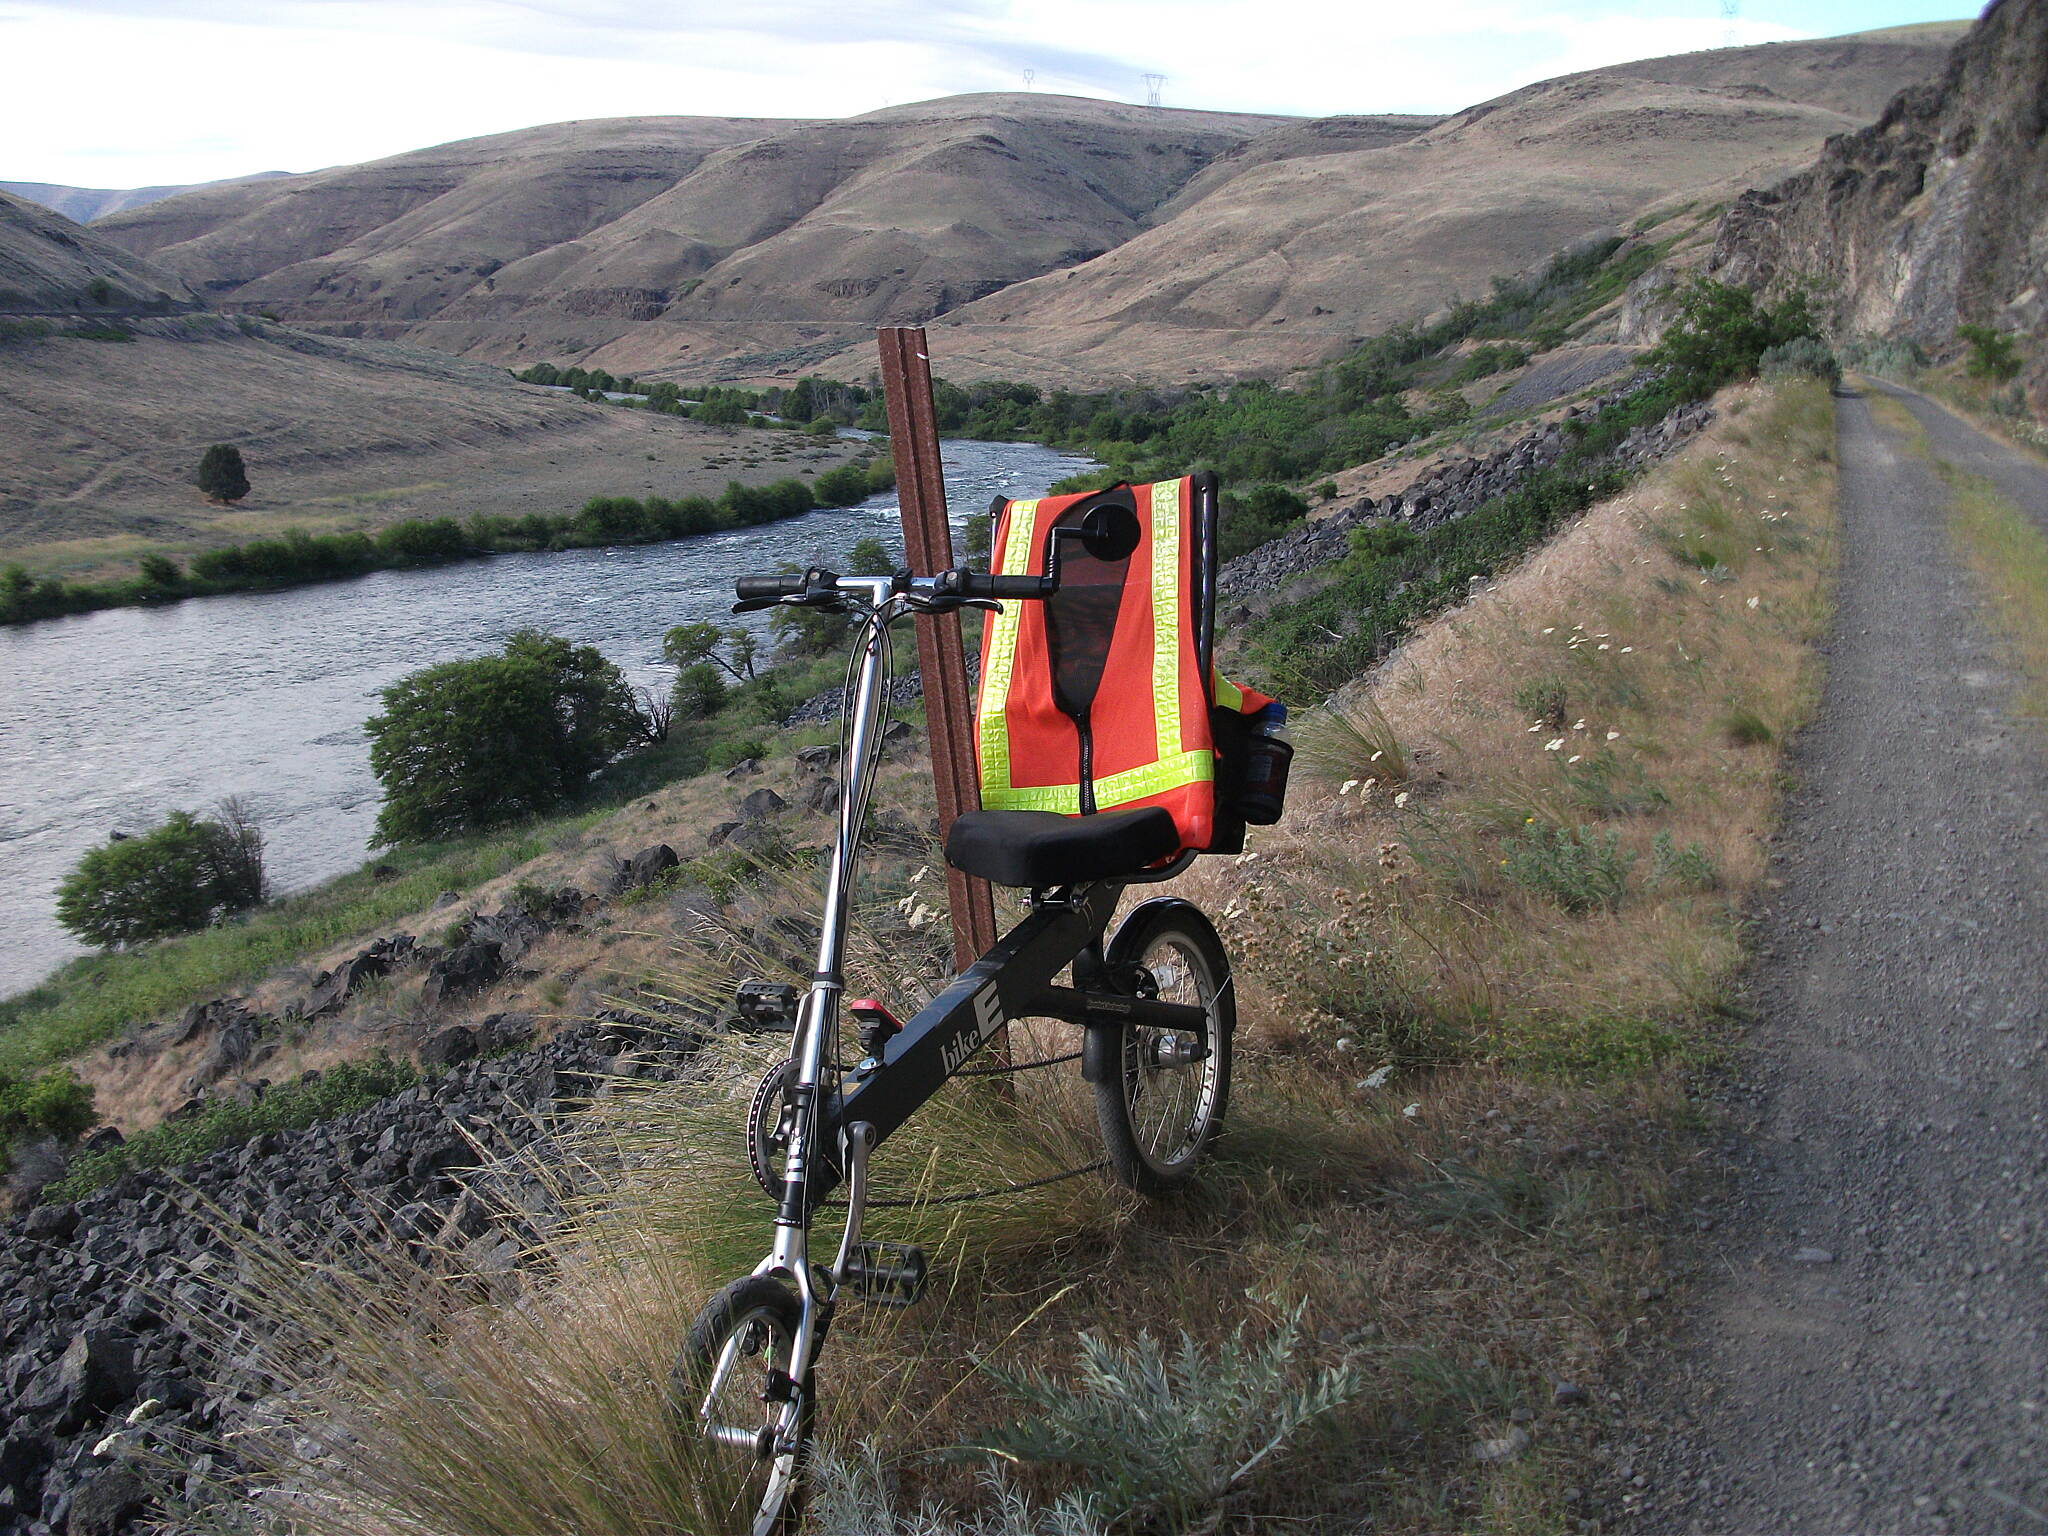 Deschutes River Railbed Trail Mile post. And my trusty steed.